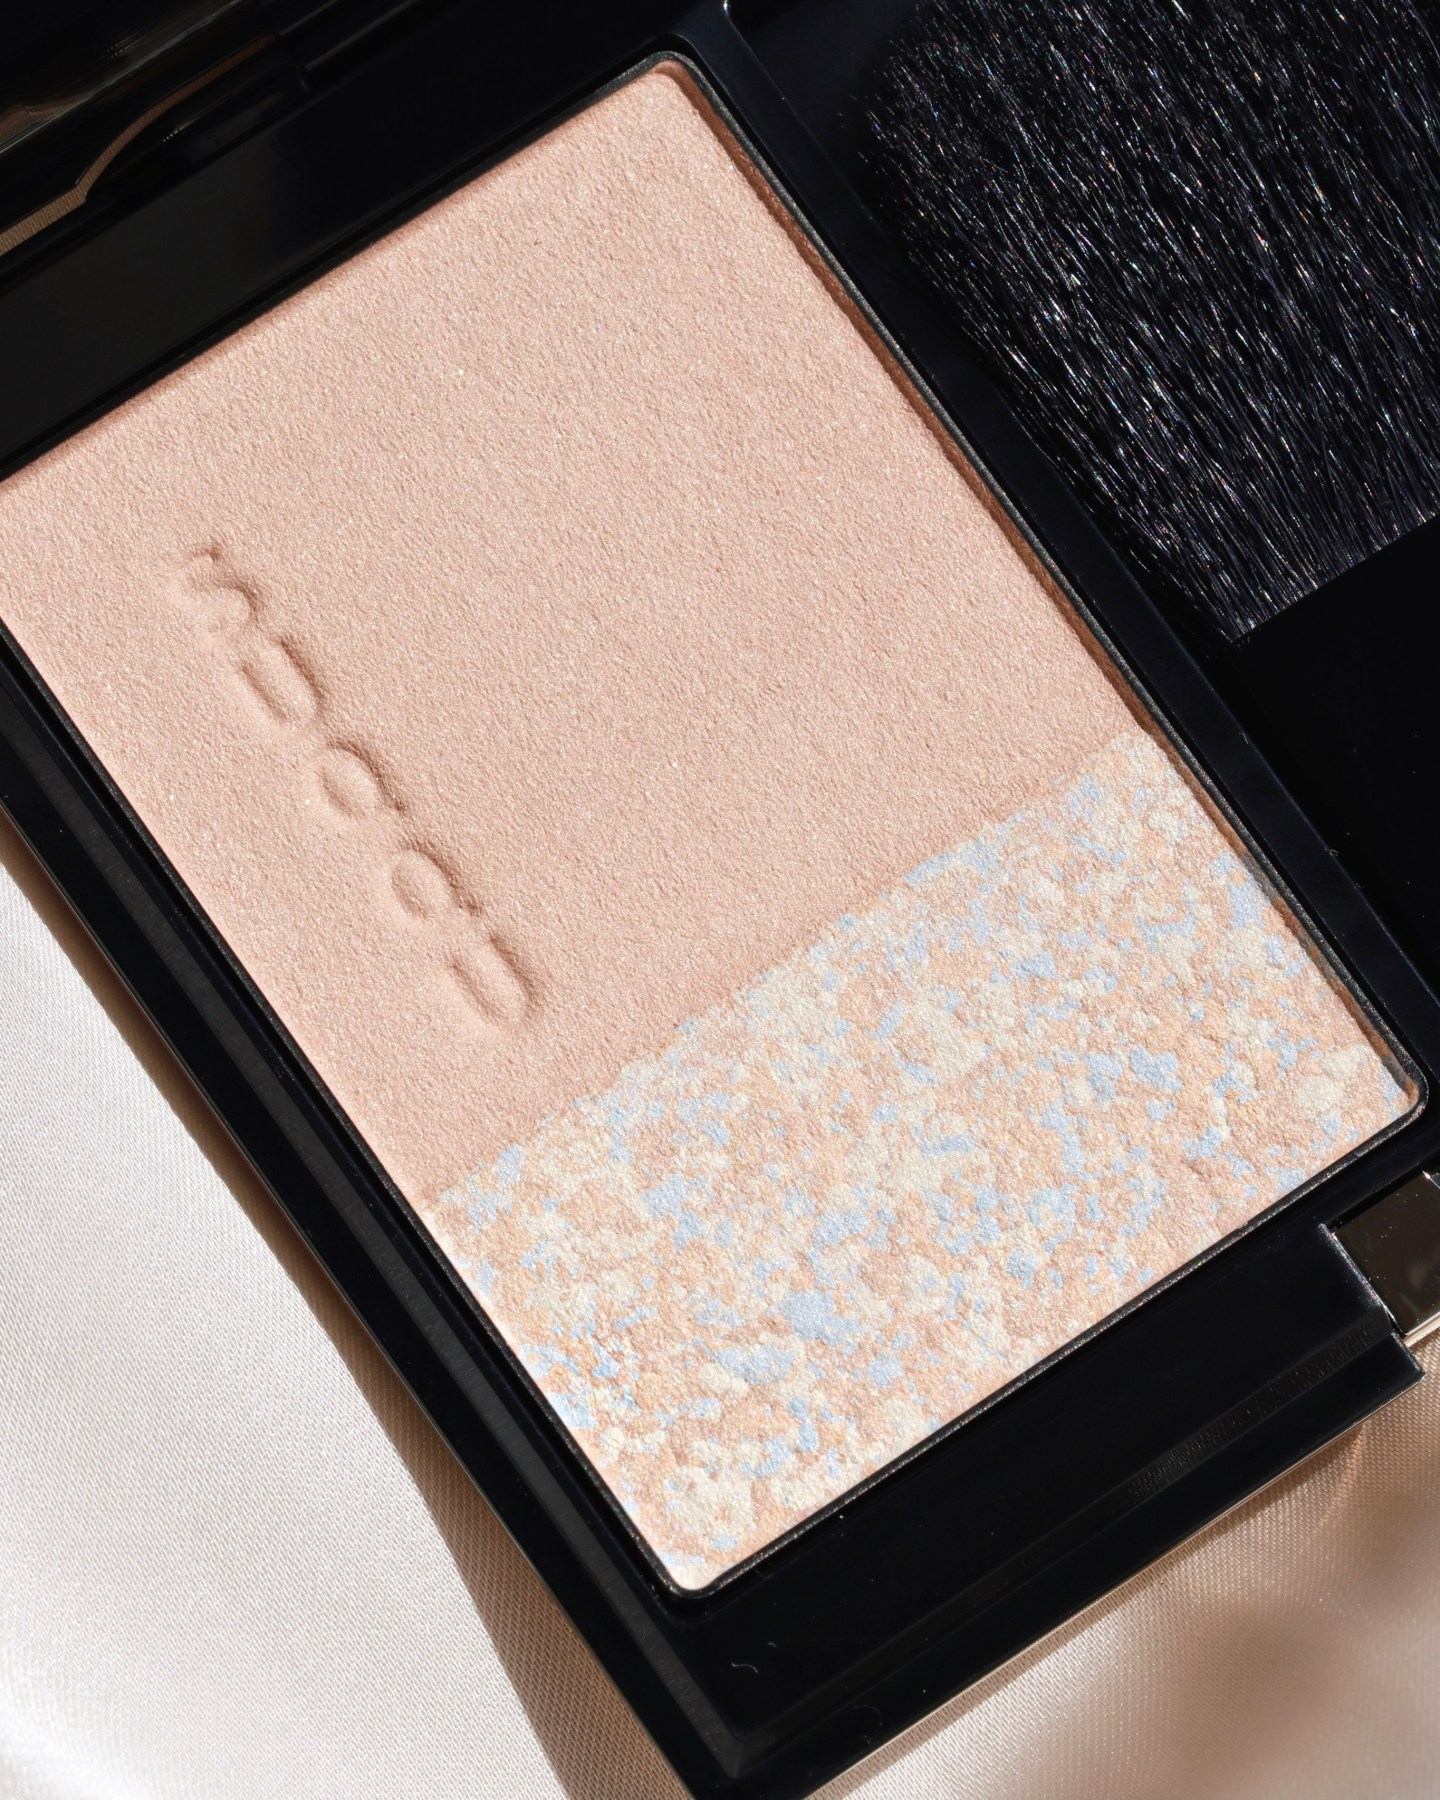 SUQQU Global Summer Colour Collection 2021 Review & Swatches